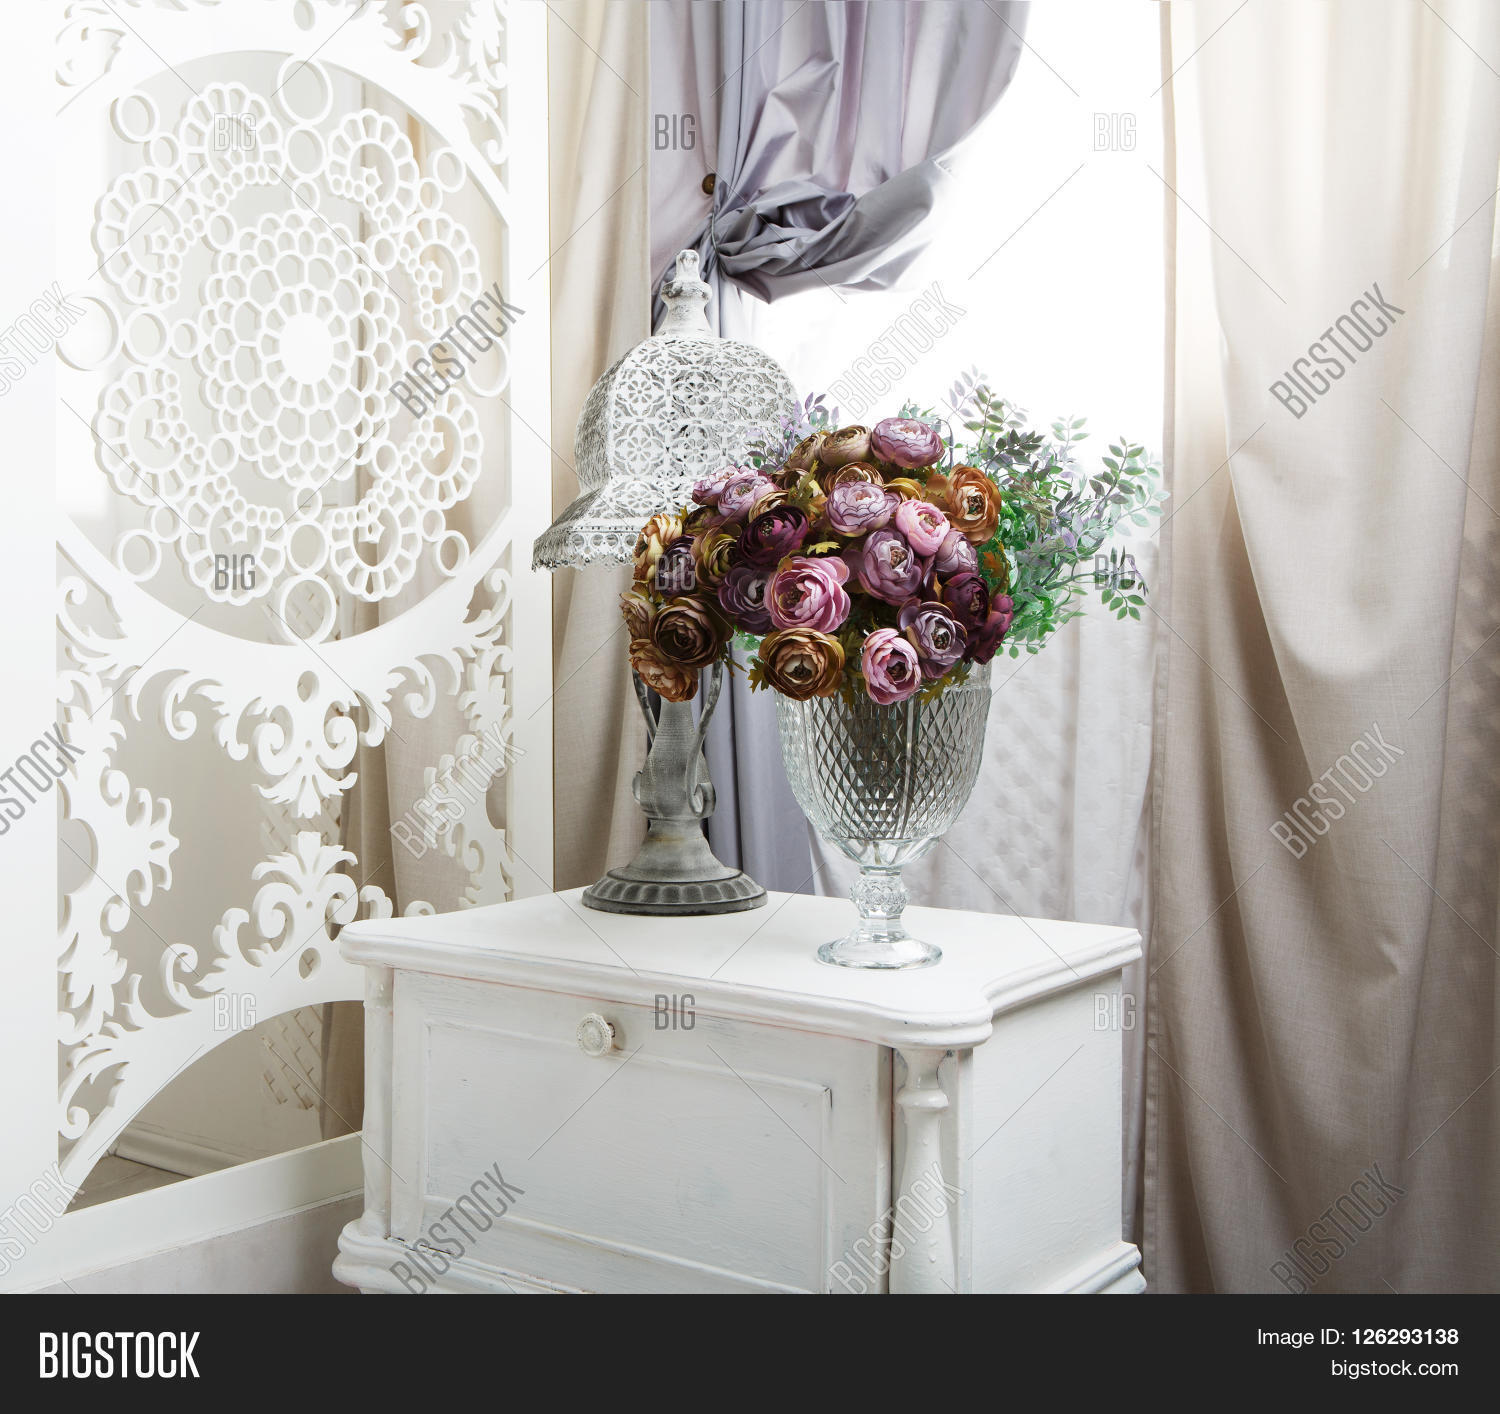 Shabby Chic Room Interior Wedding Image Photo Bigstock